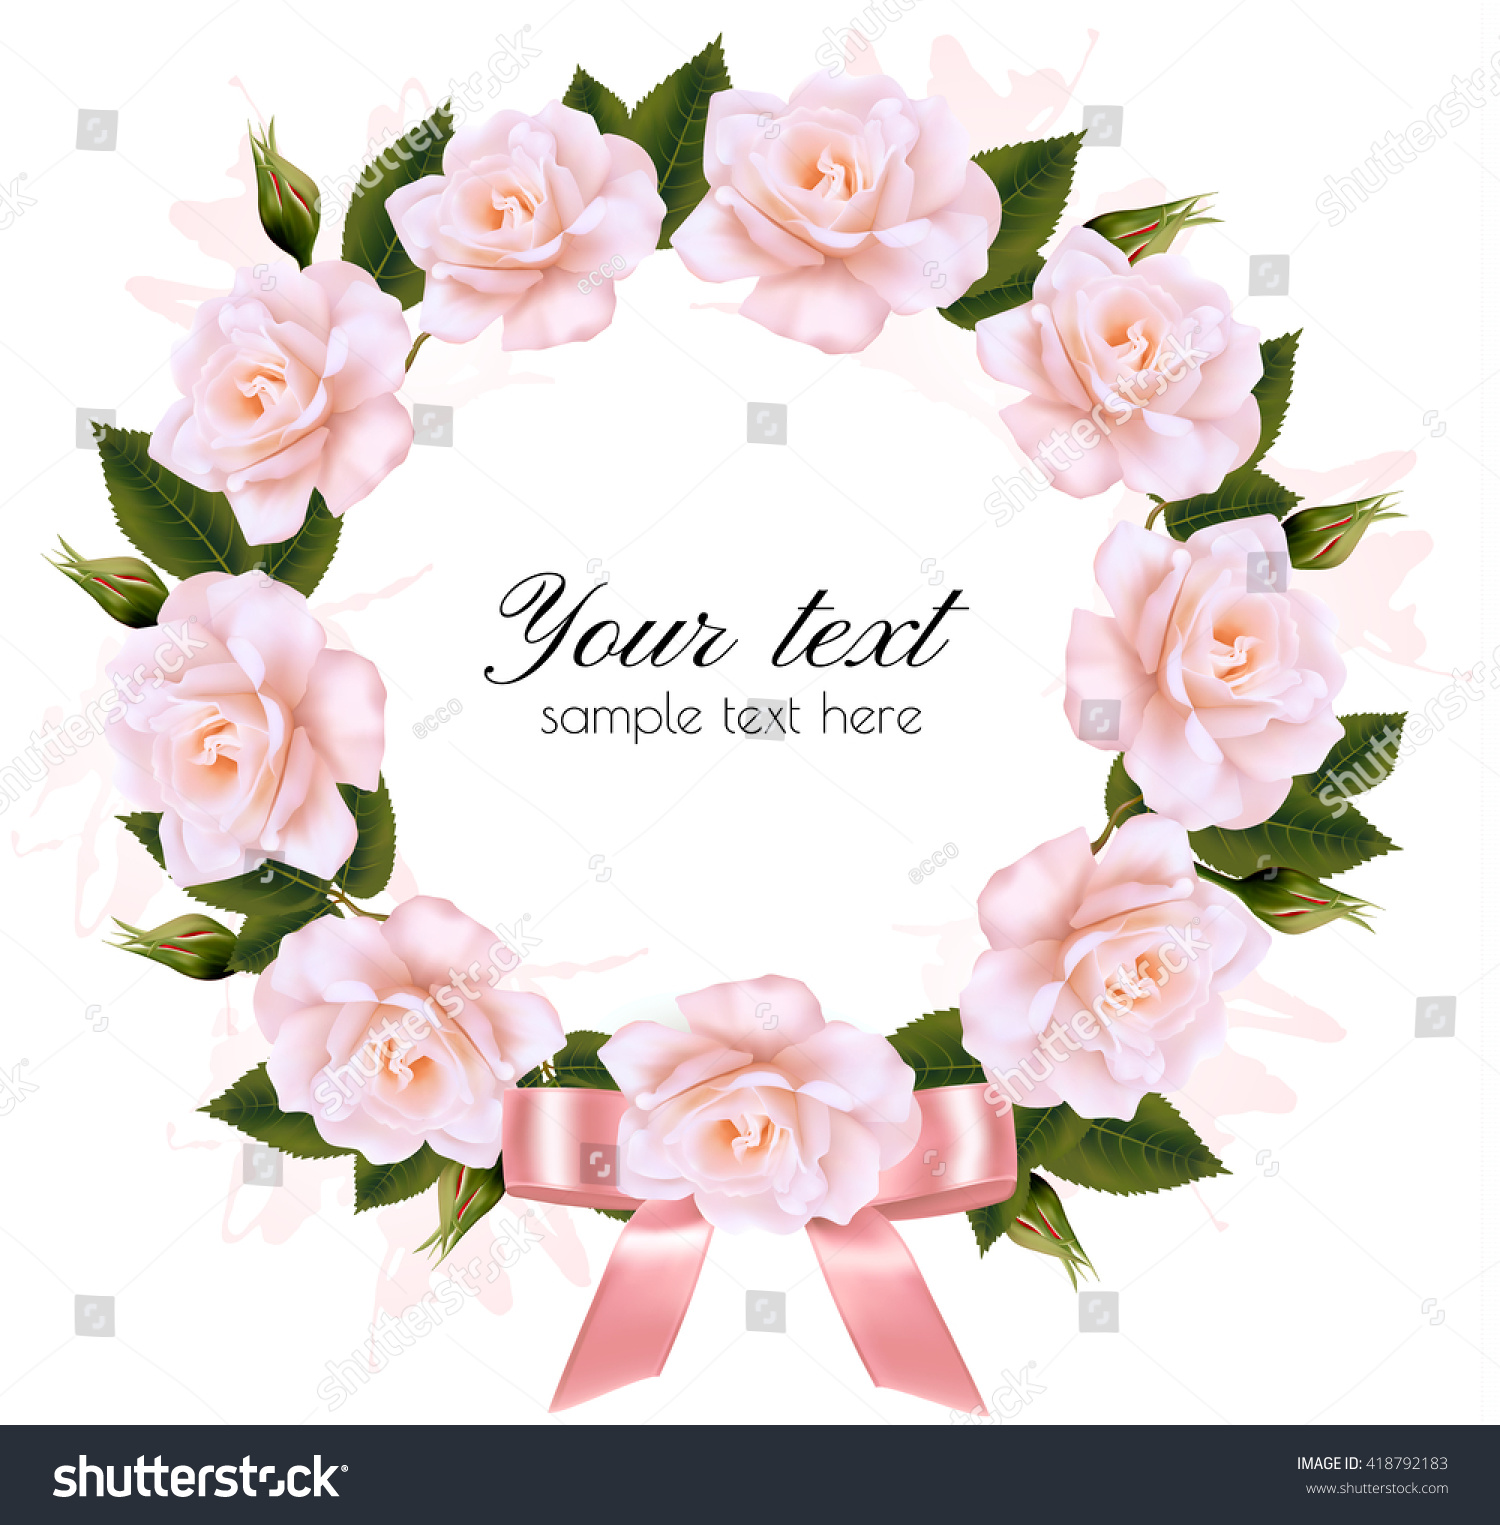 Background Made Out Pink White Flowers Stock Vector 418792183